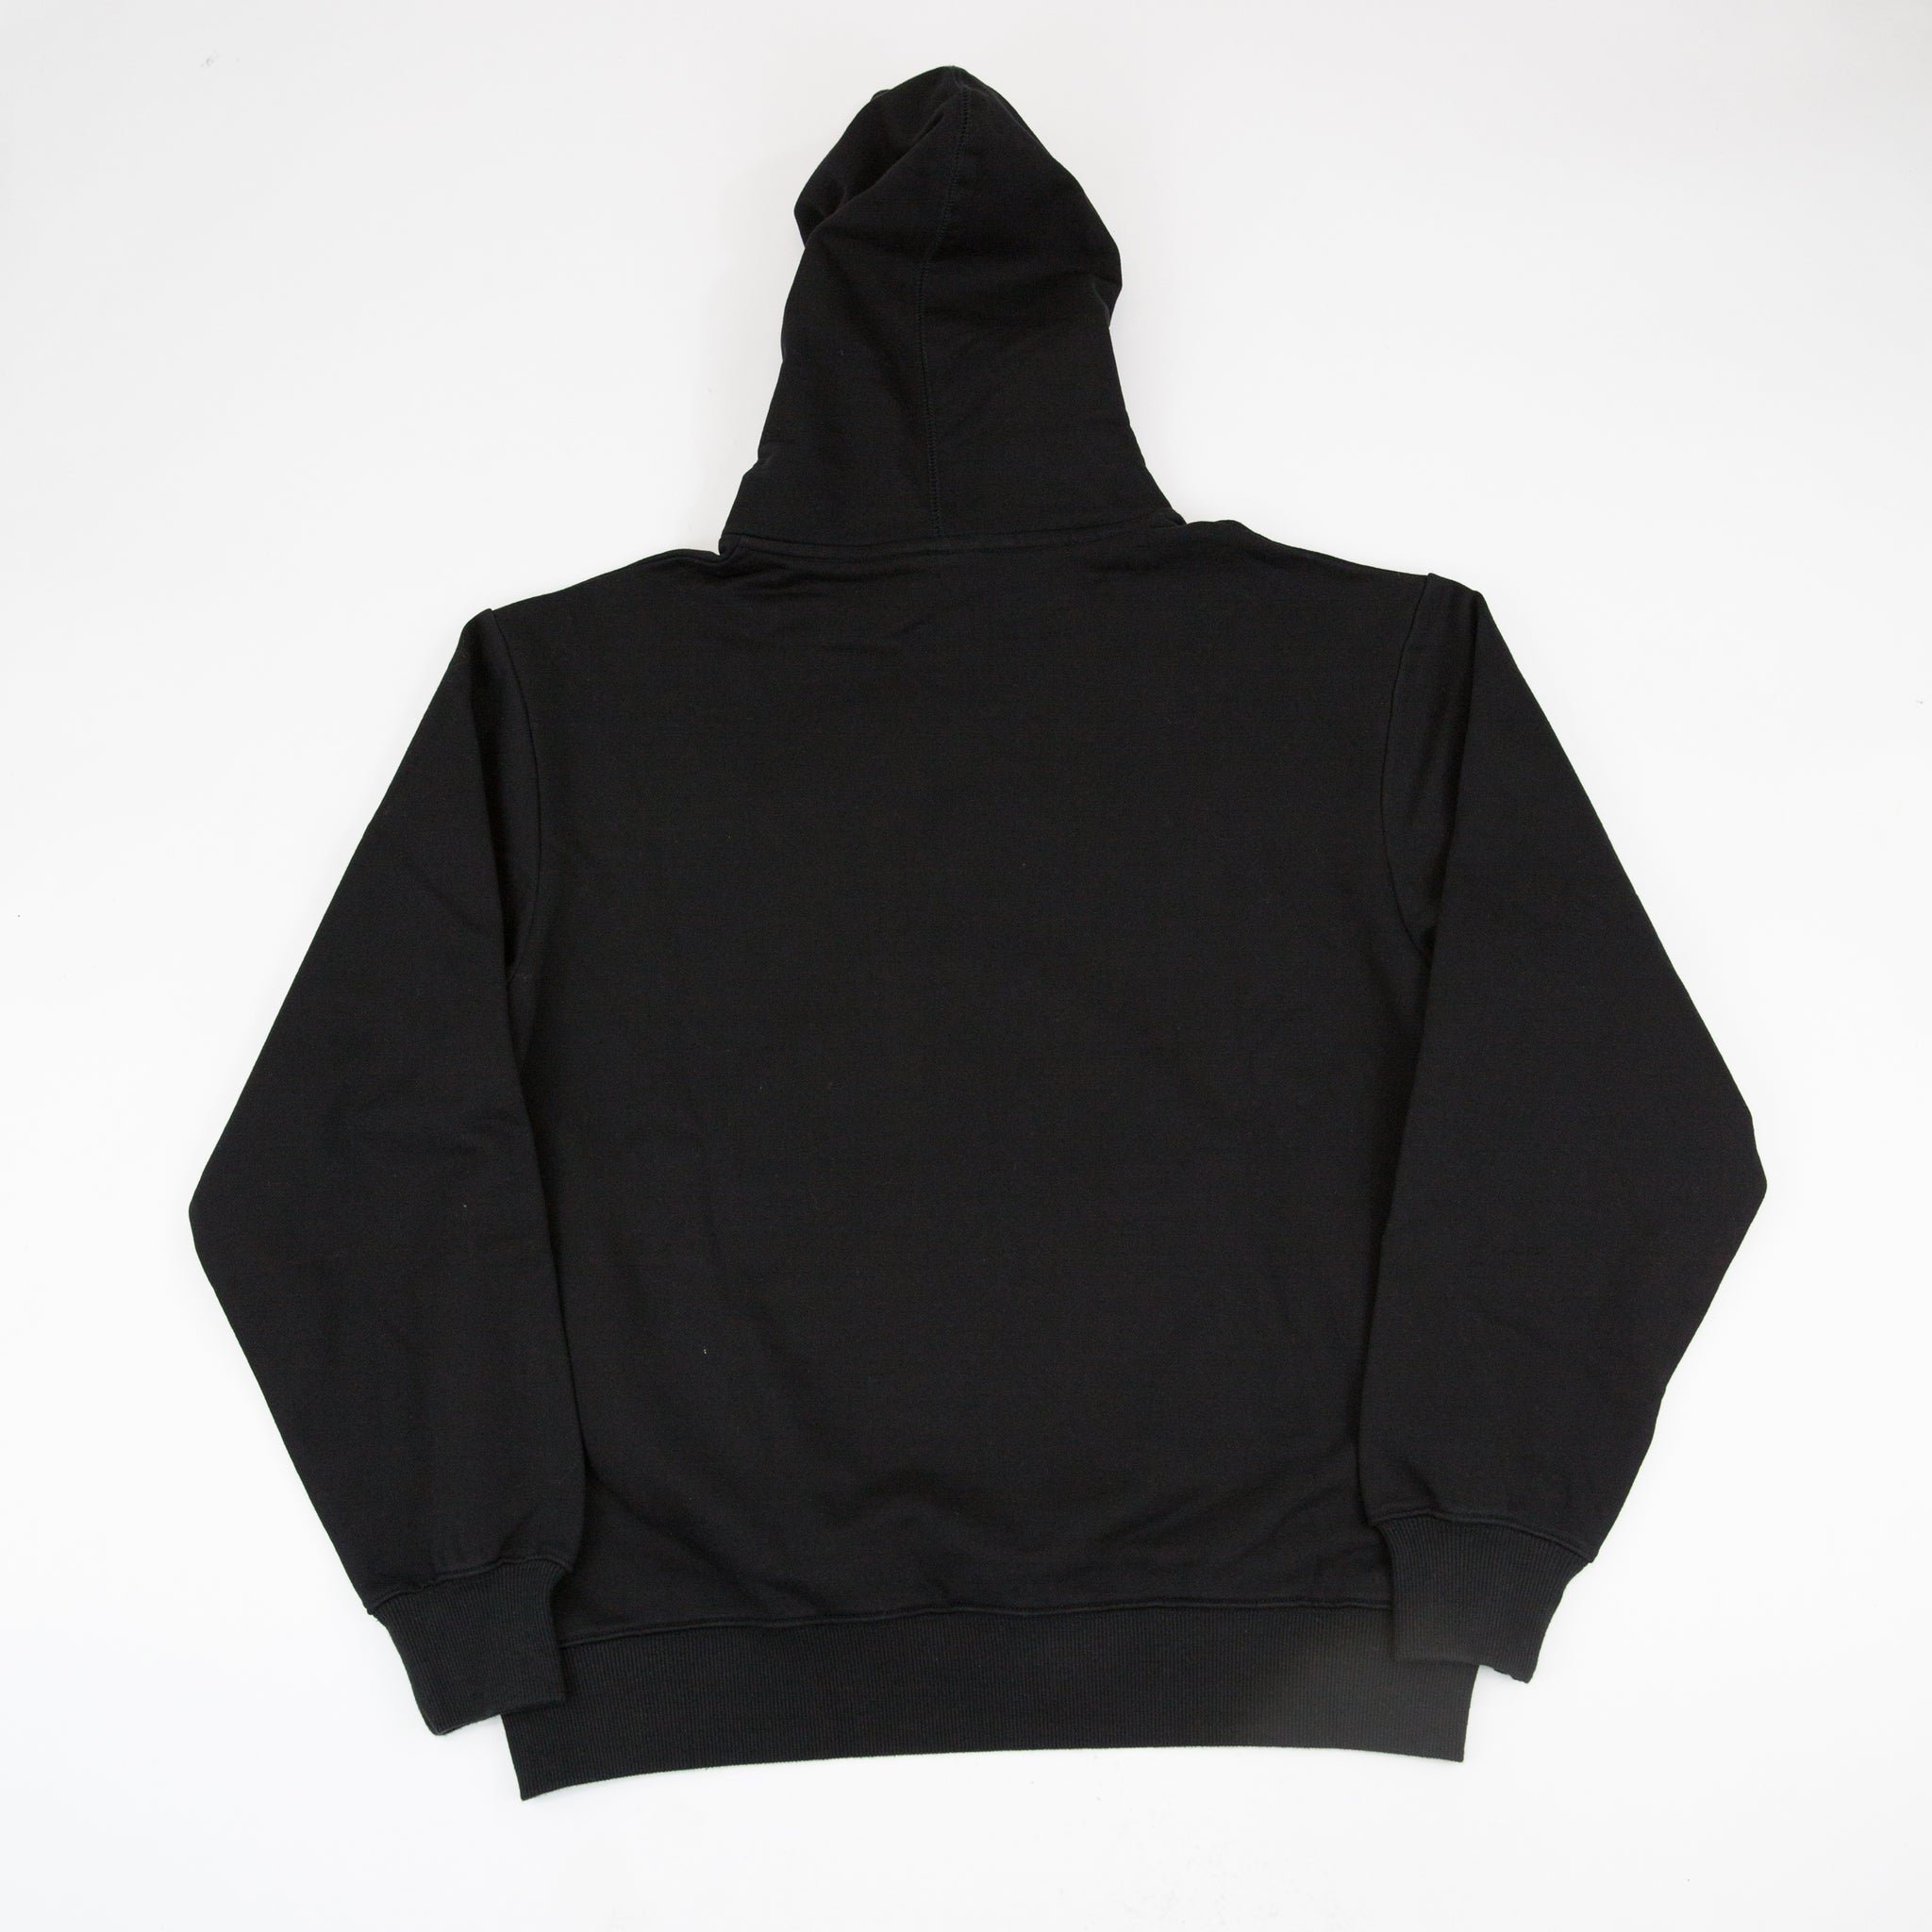 STAMPD - Sergio Tacchini Collaboration Penthouse Hoodie - Black